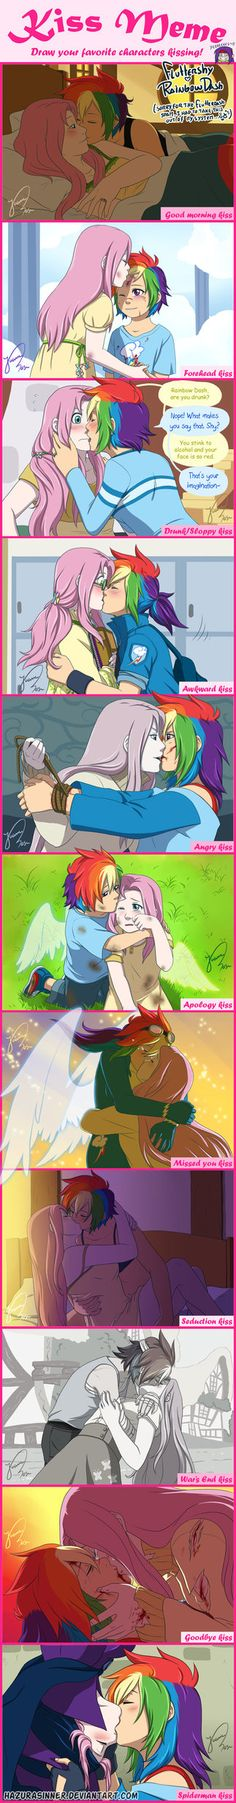 FlutterDash Kiss Meme by *HazuraSinner on deviantART